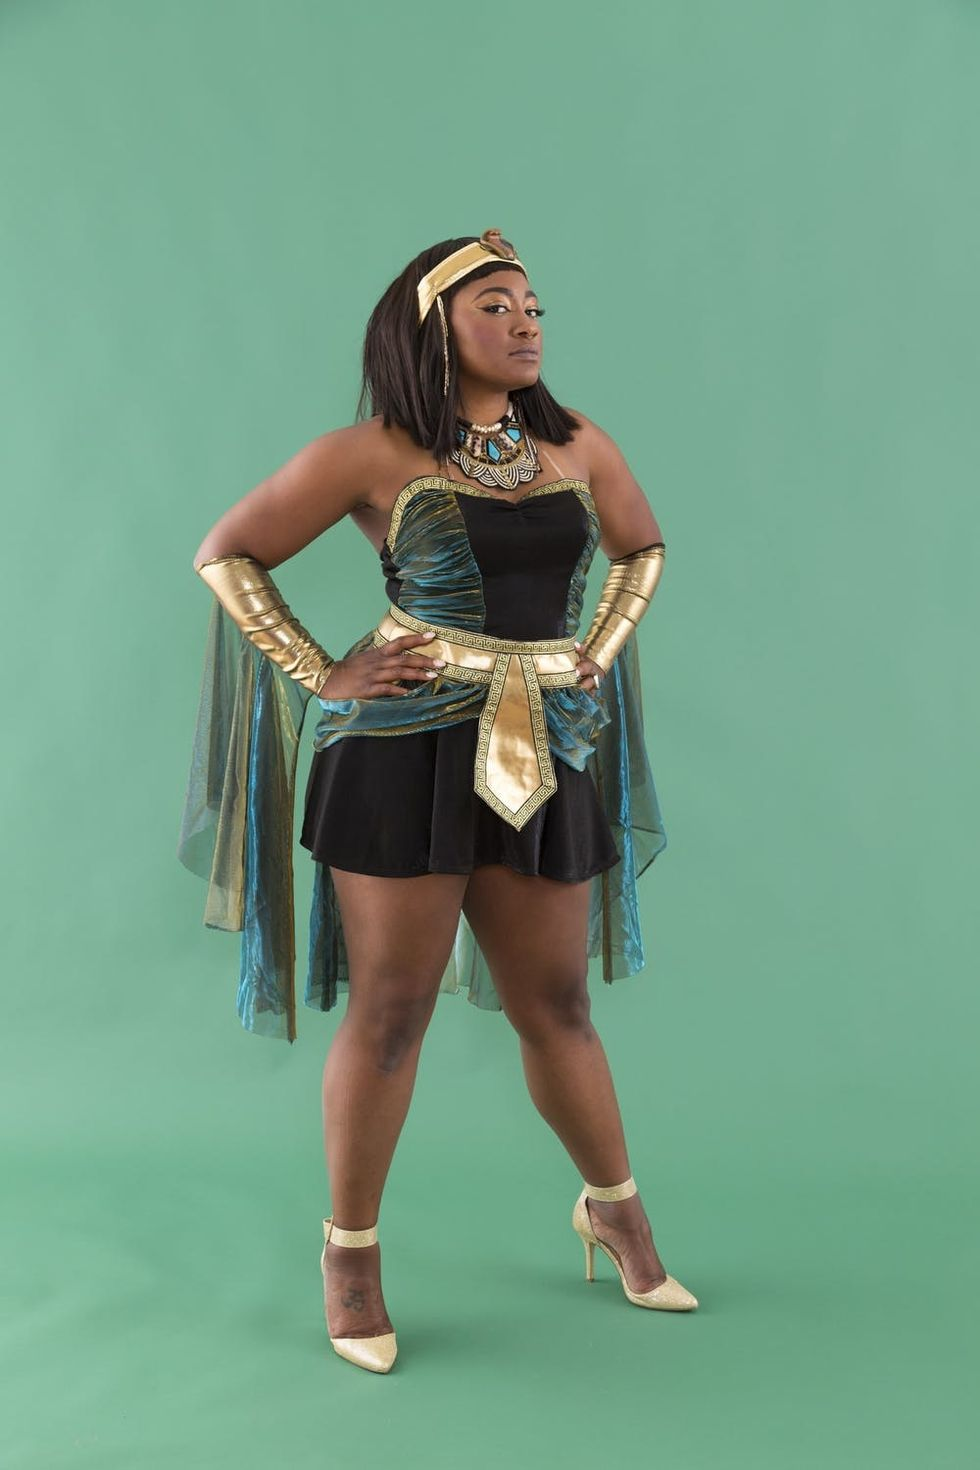 This Cleopatra Halloween Costume Is Easy Enough For Beginners But High On Nile Style Brit Co